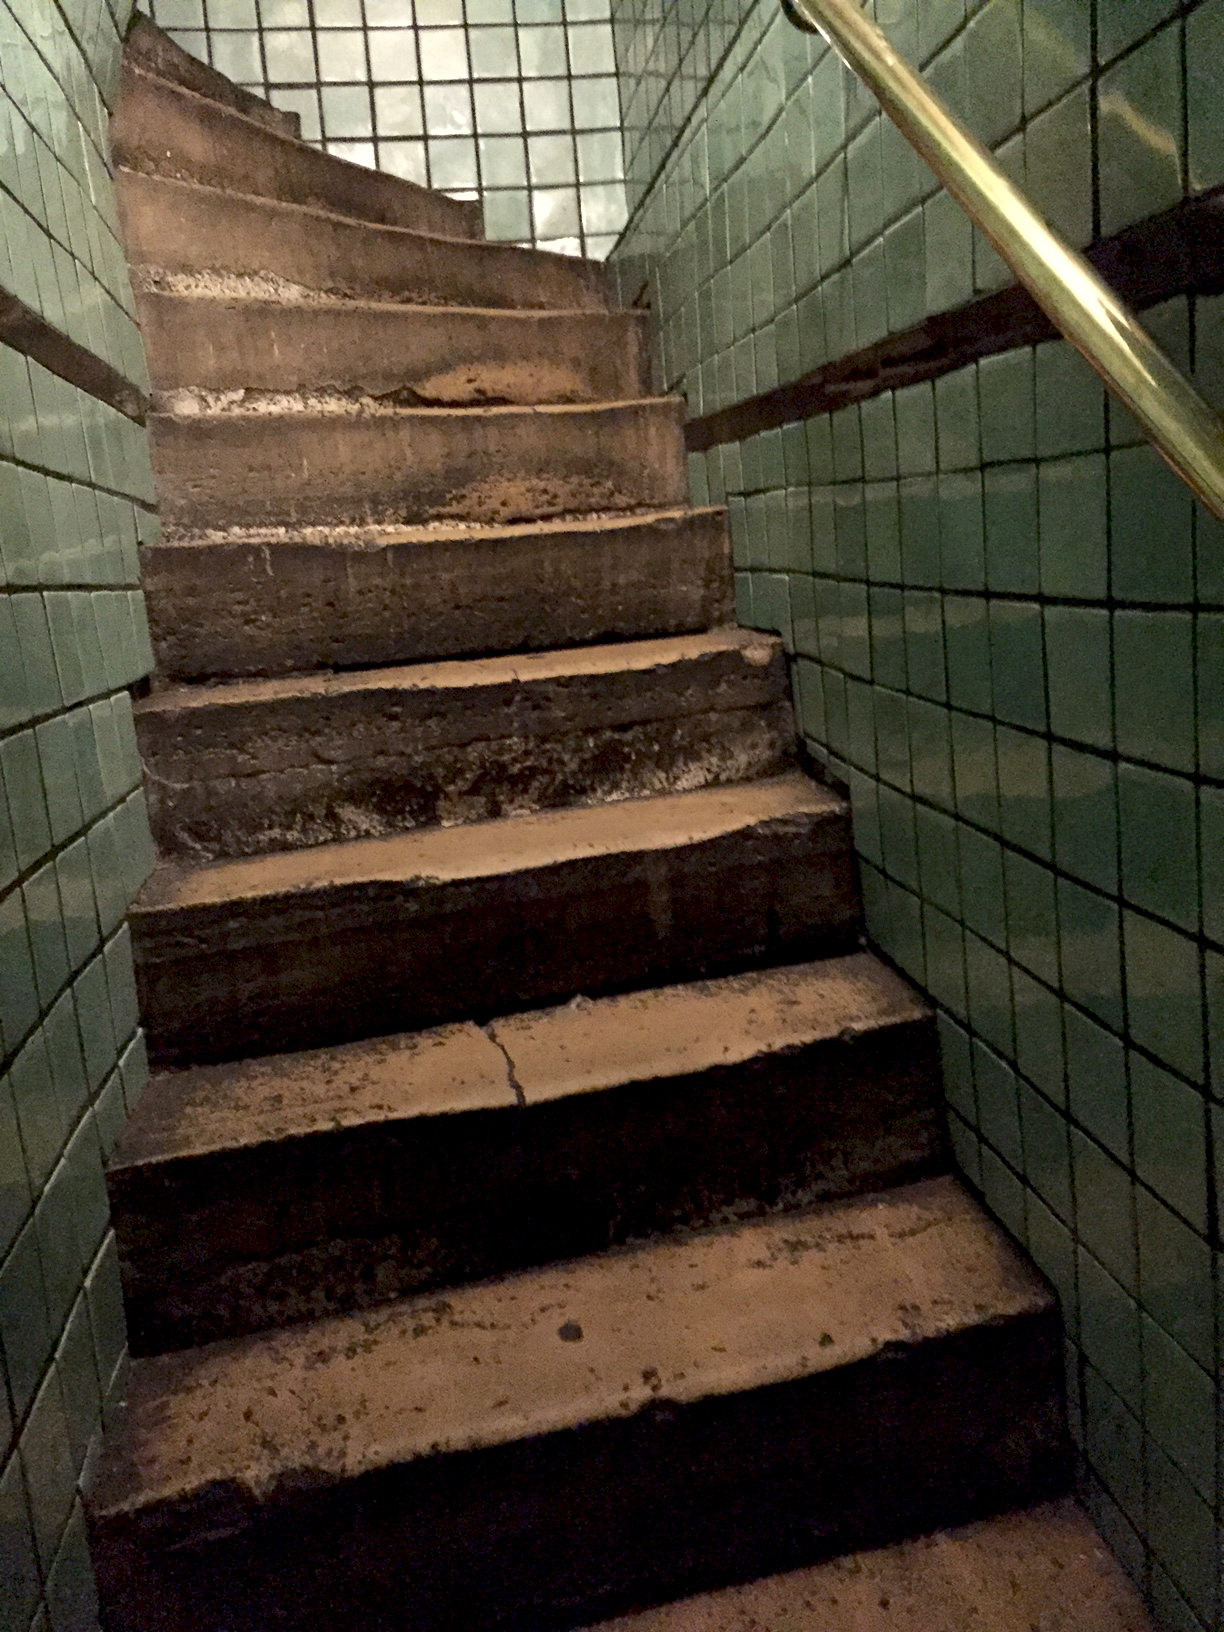 Stairs down to the bathroom...